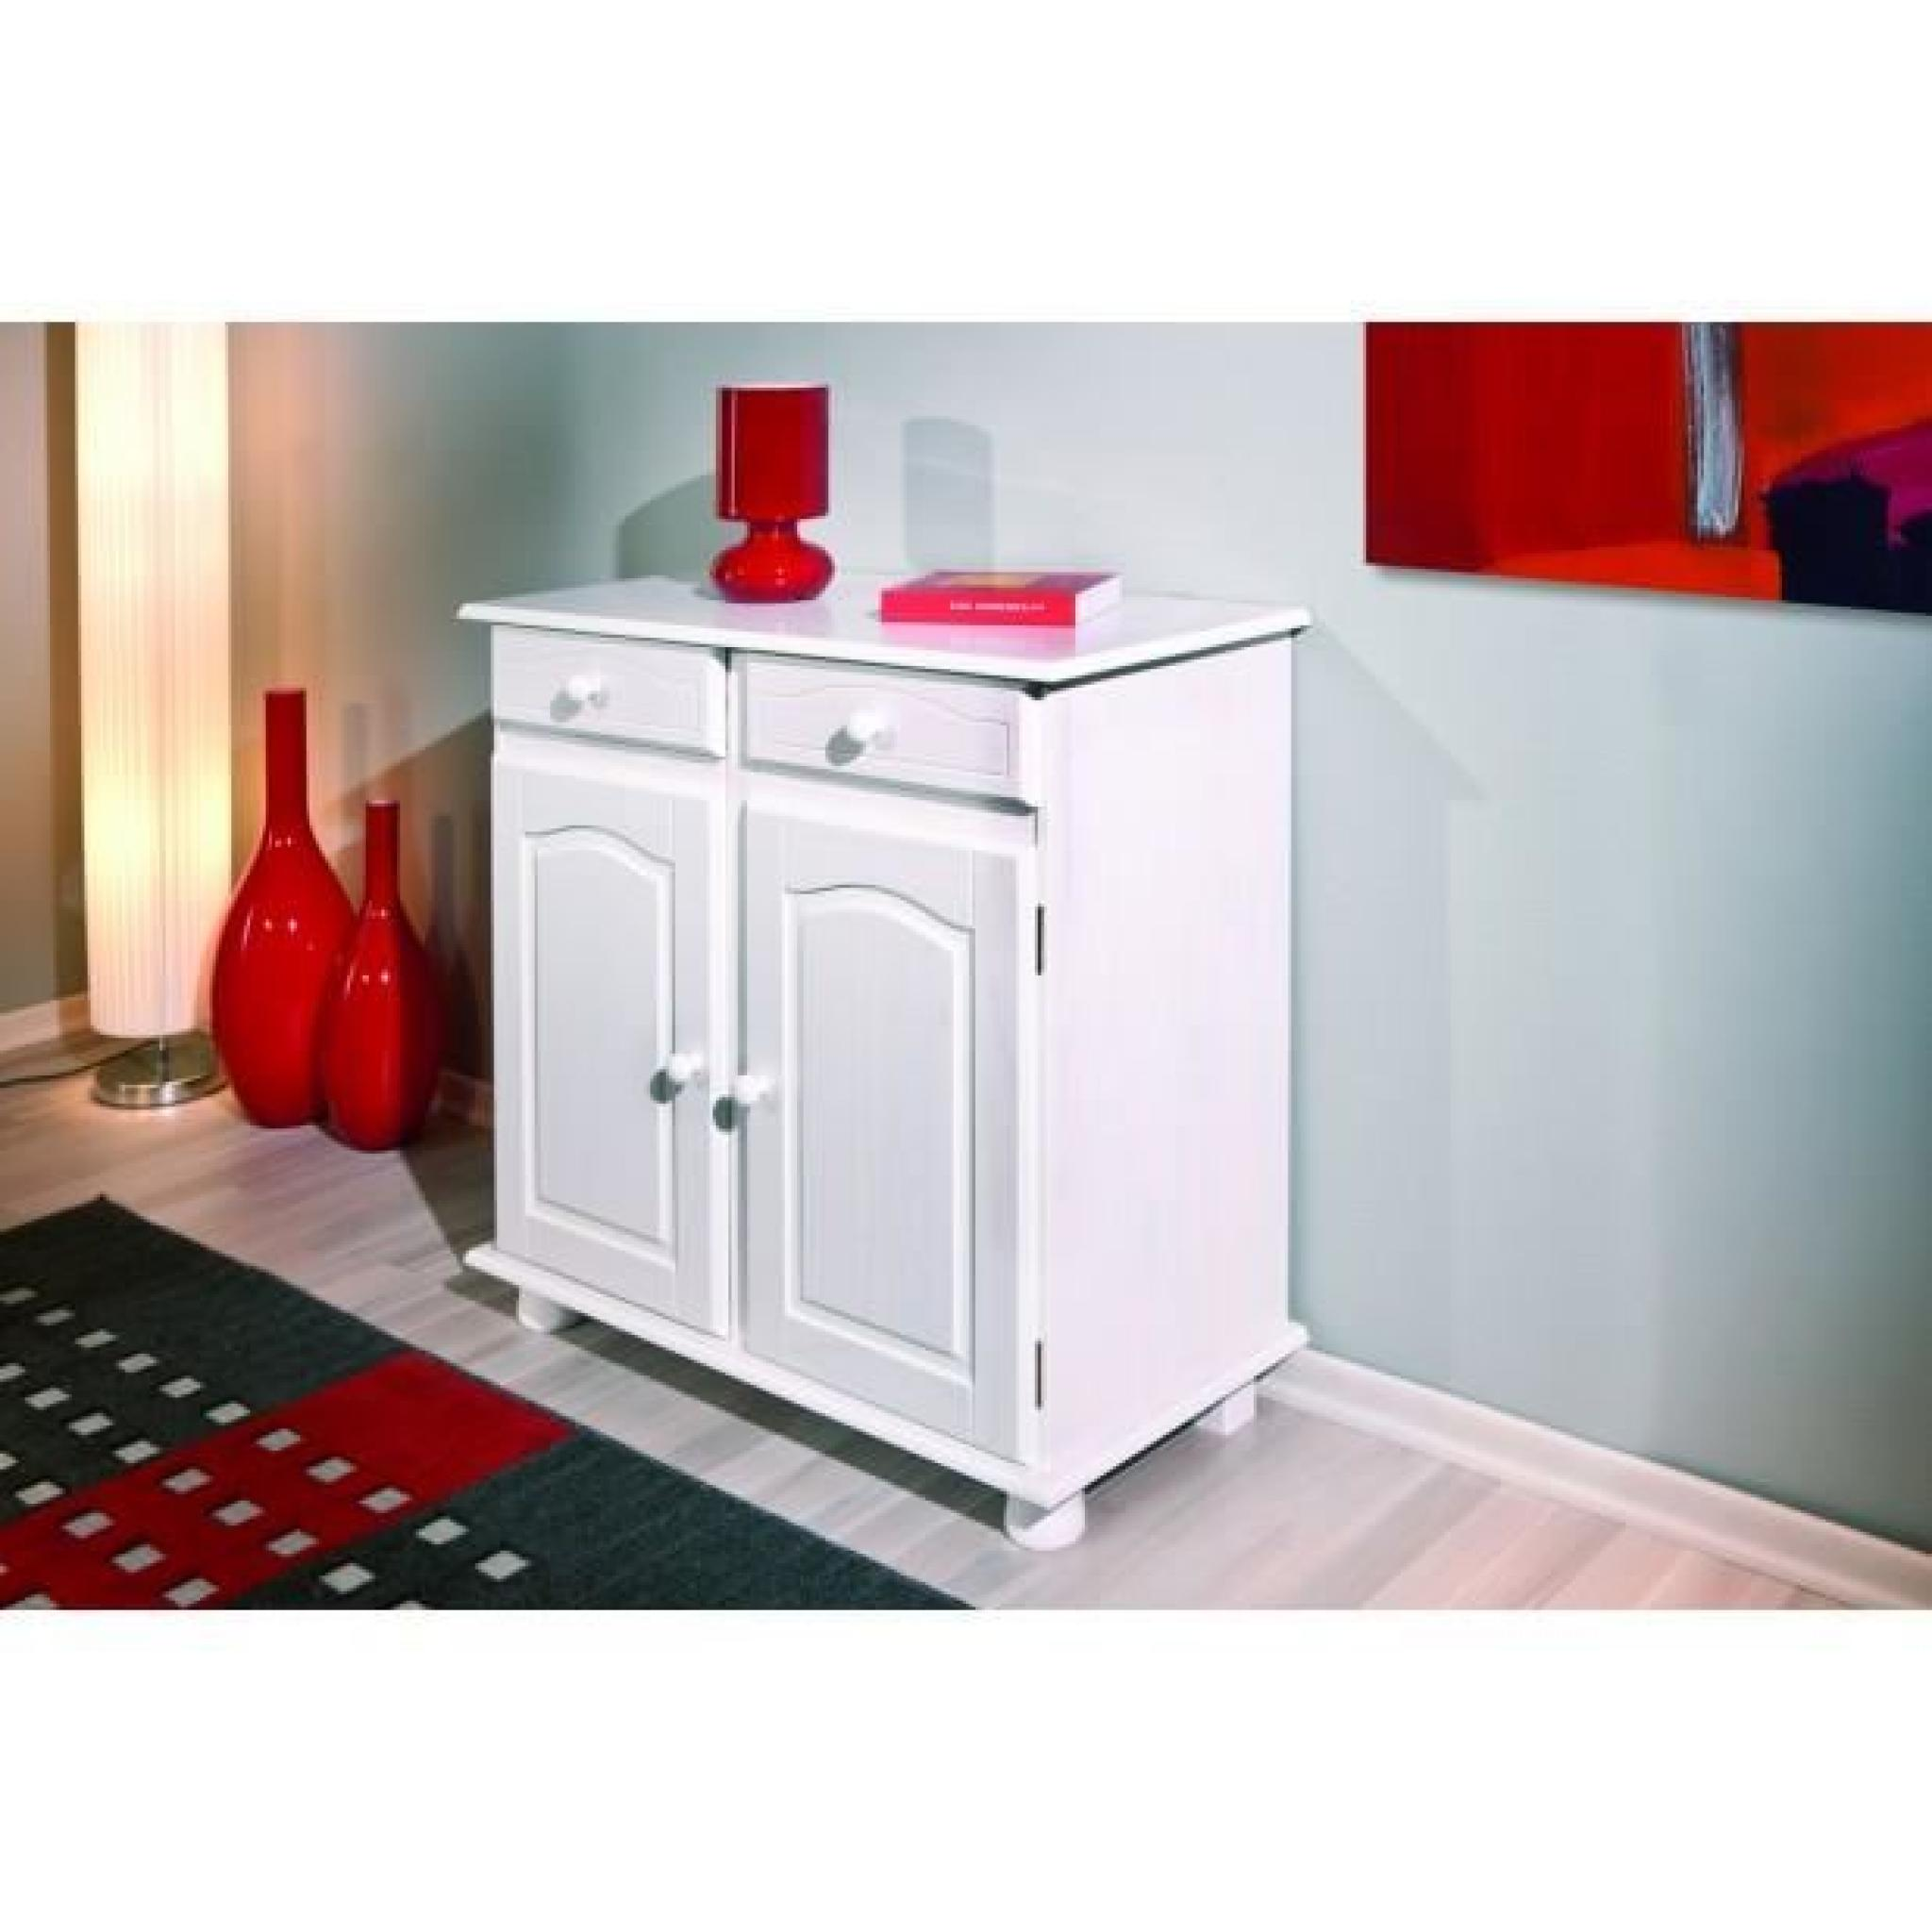 bahut bas 2 portes pin massif teint blanc achat vente buffet pas cher couleur et. Black Bedroom Furniture Sets. Home Design Ideas